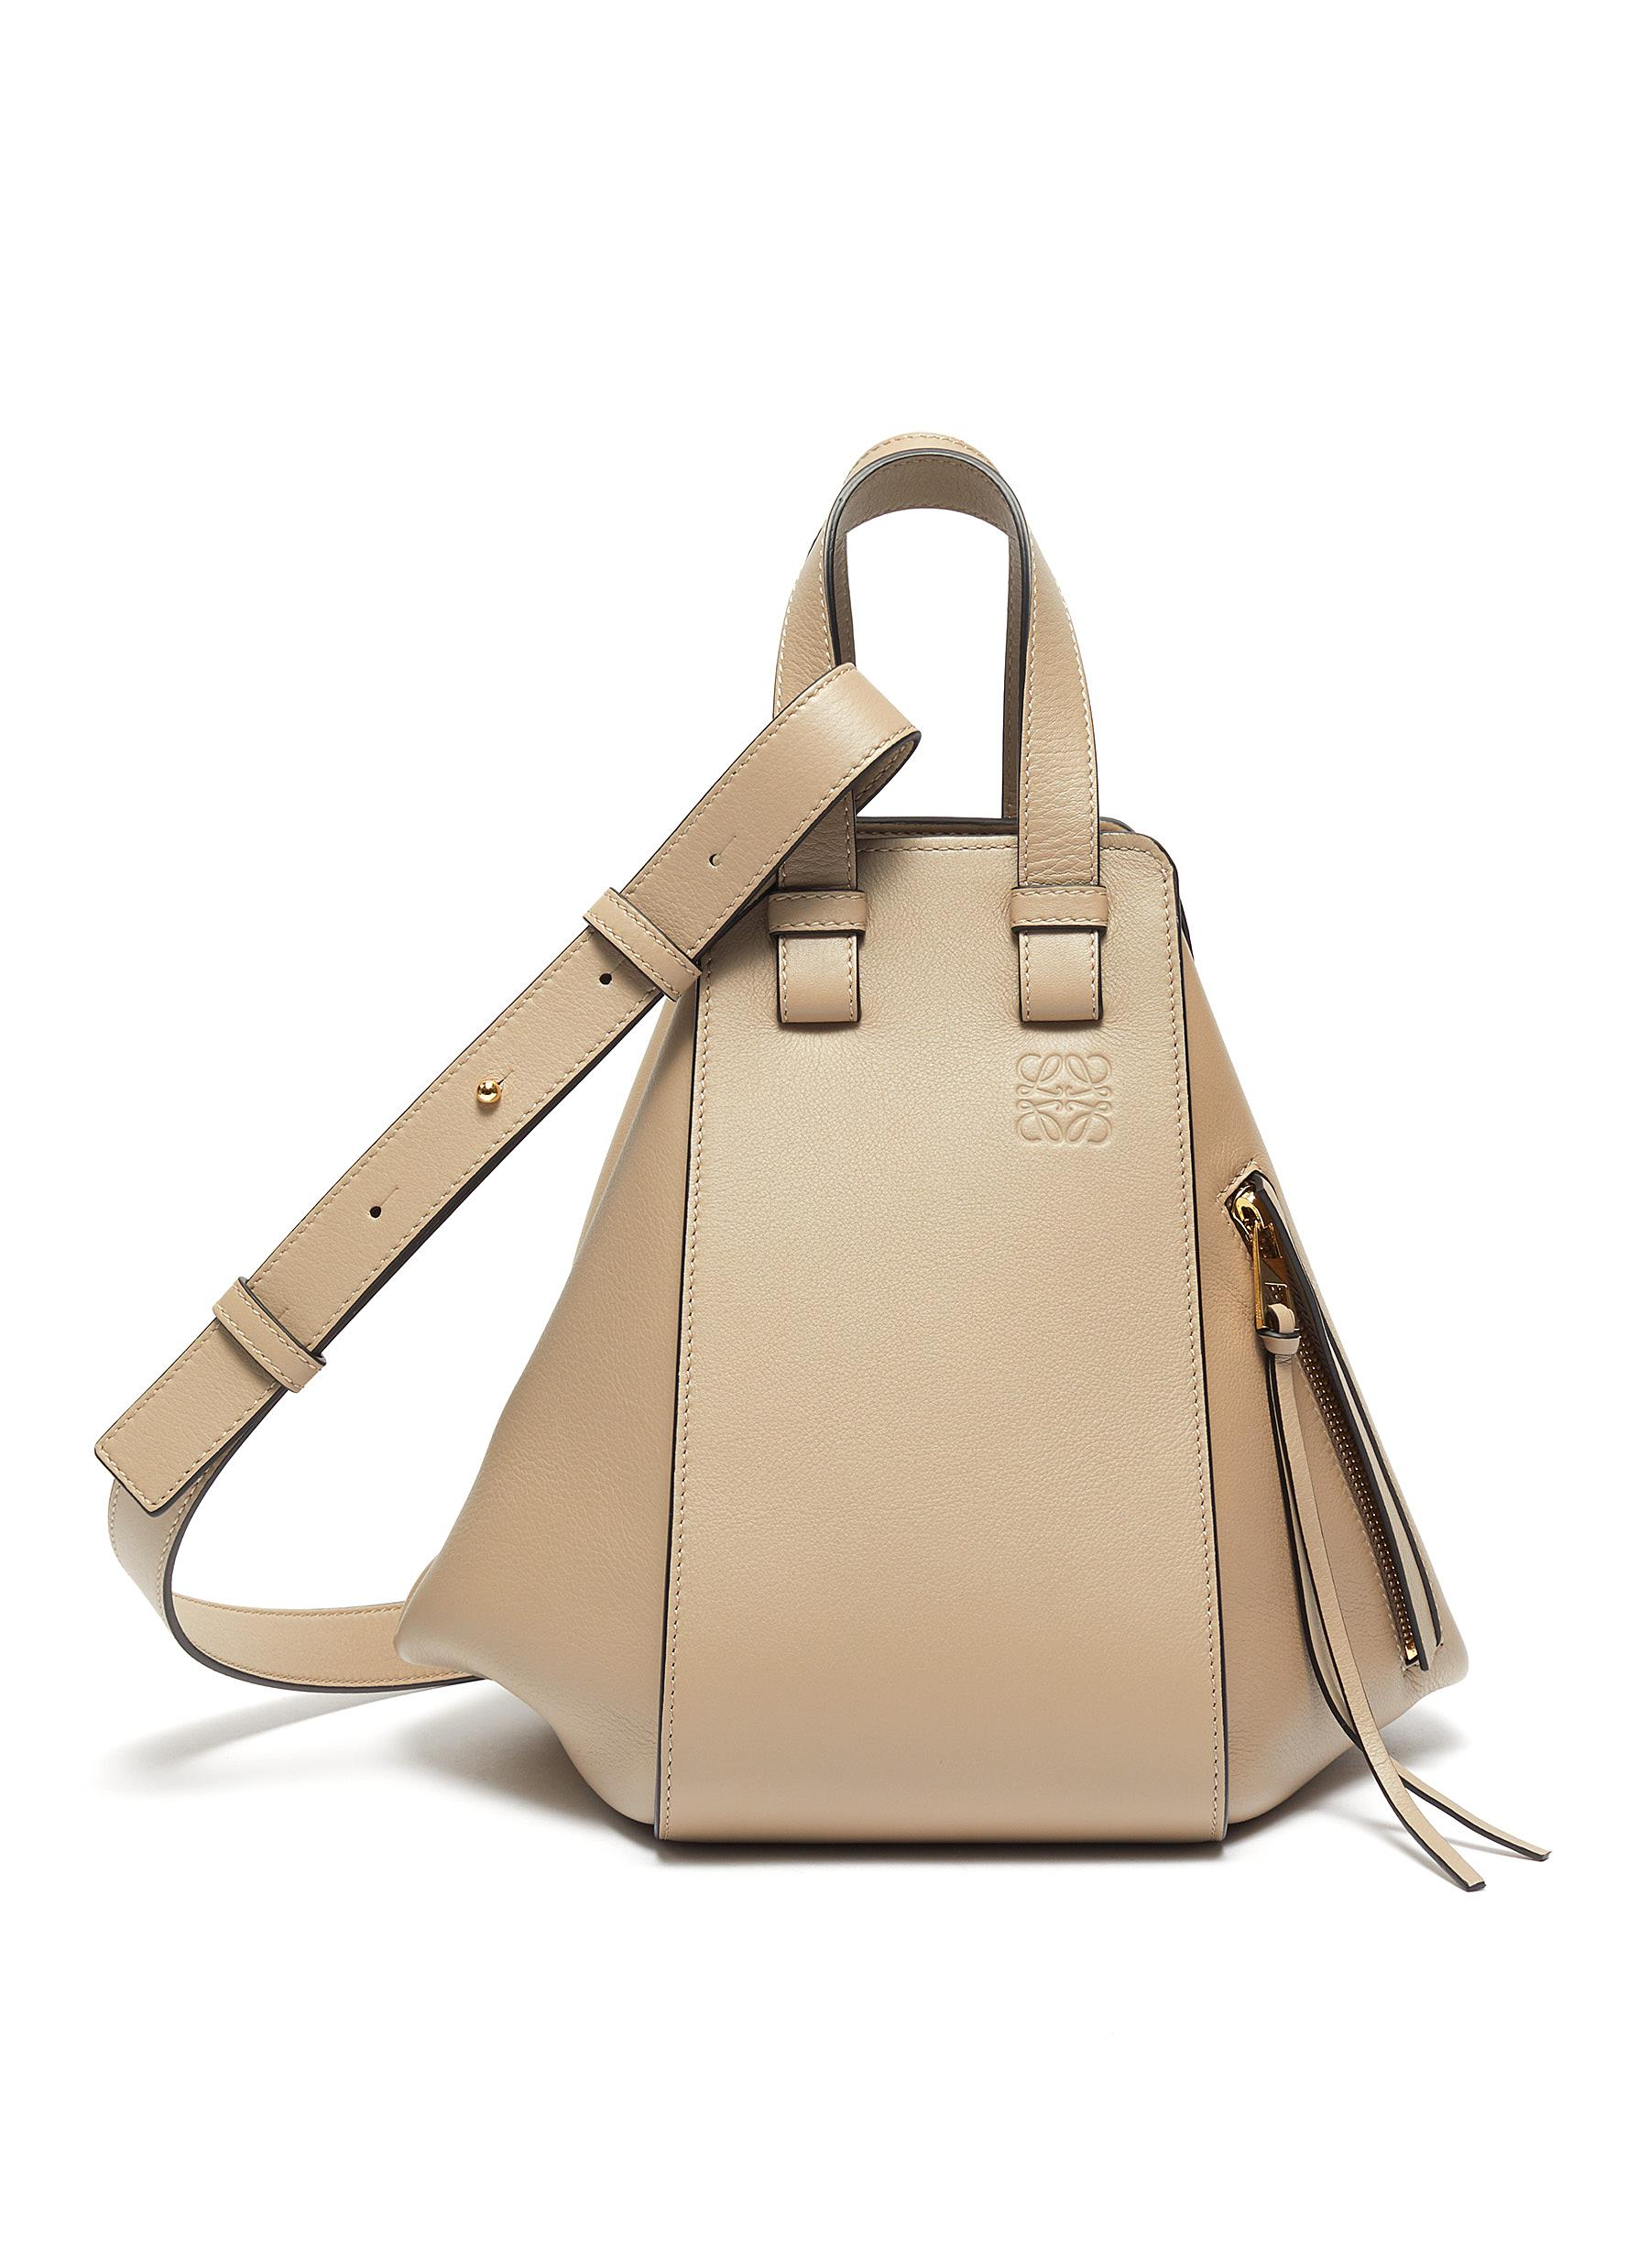 'Hammock' panelled leather small tote bag